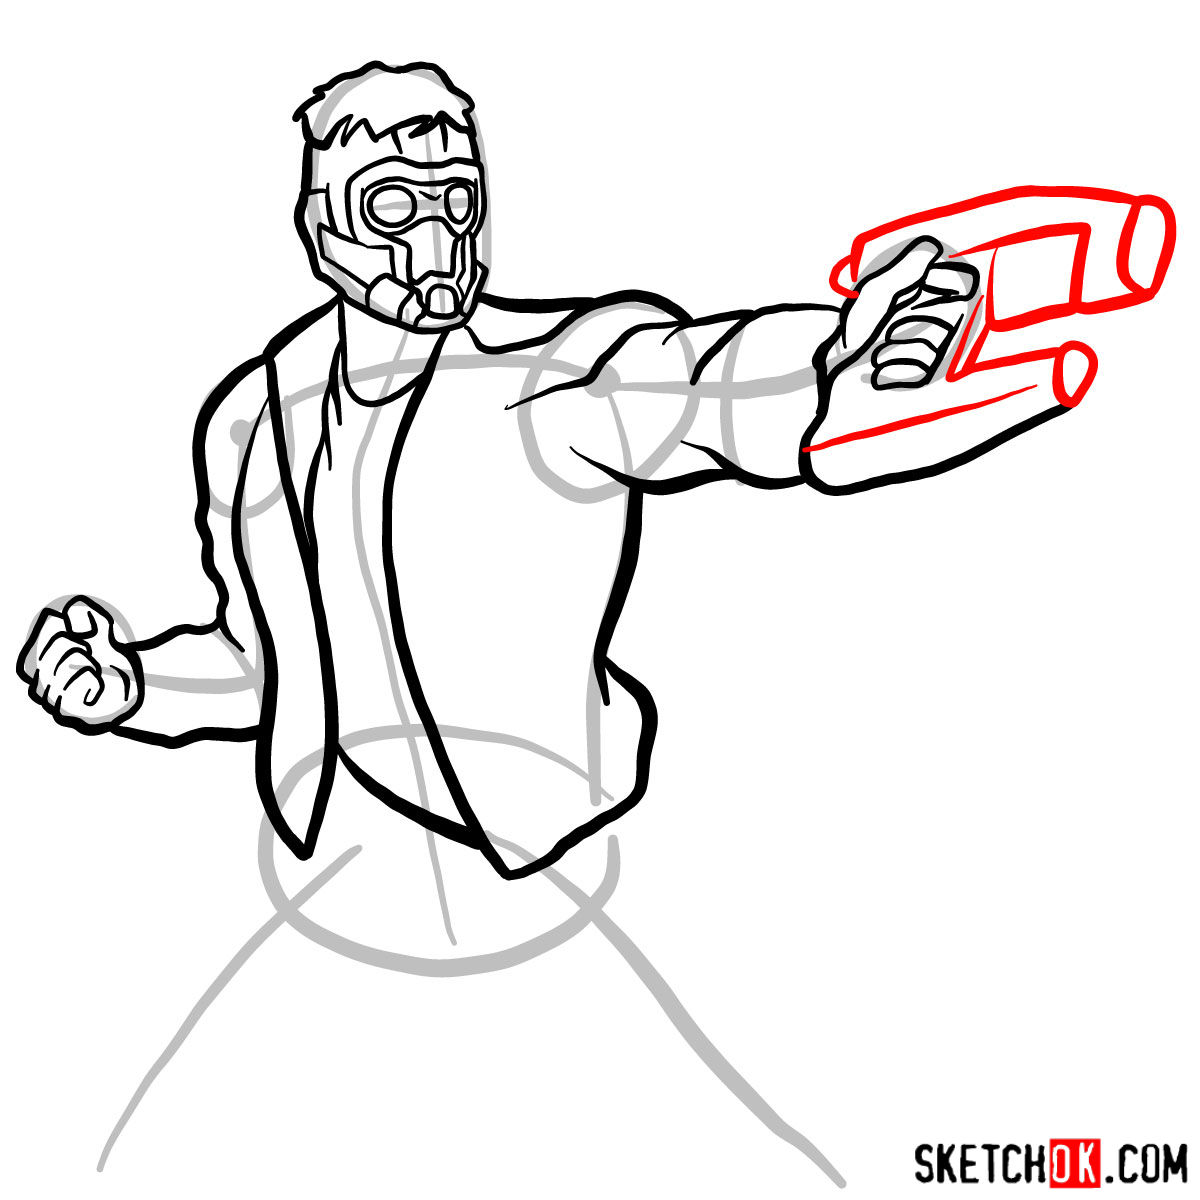 How to draw Star-Lord from Guardians of the Galaxy - step 11